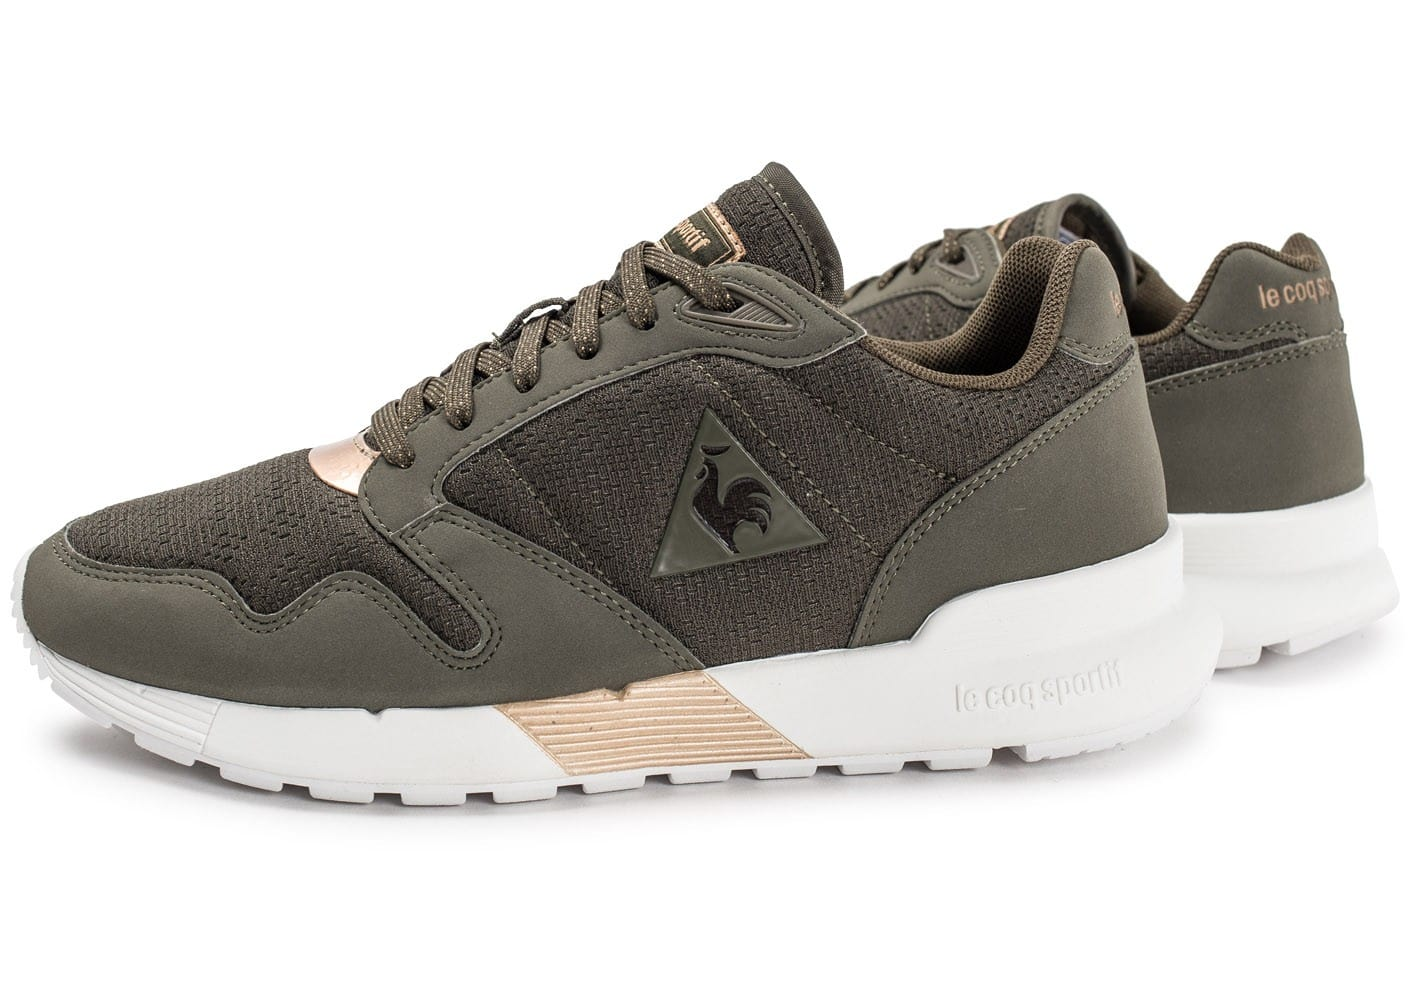 le coq sportif omega x w metallic kaki chaussures 50 sur le 2e article chausport. Black Bedroom Furniture Sets. Home Design Ideas